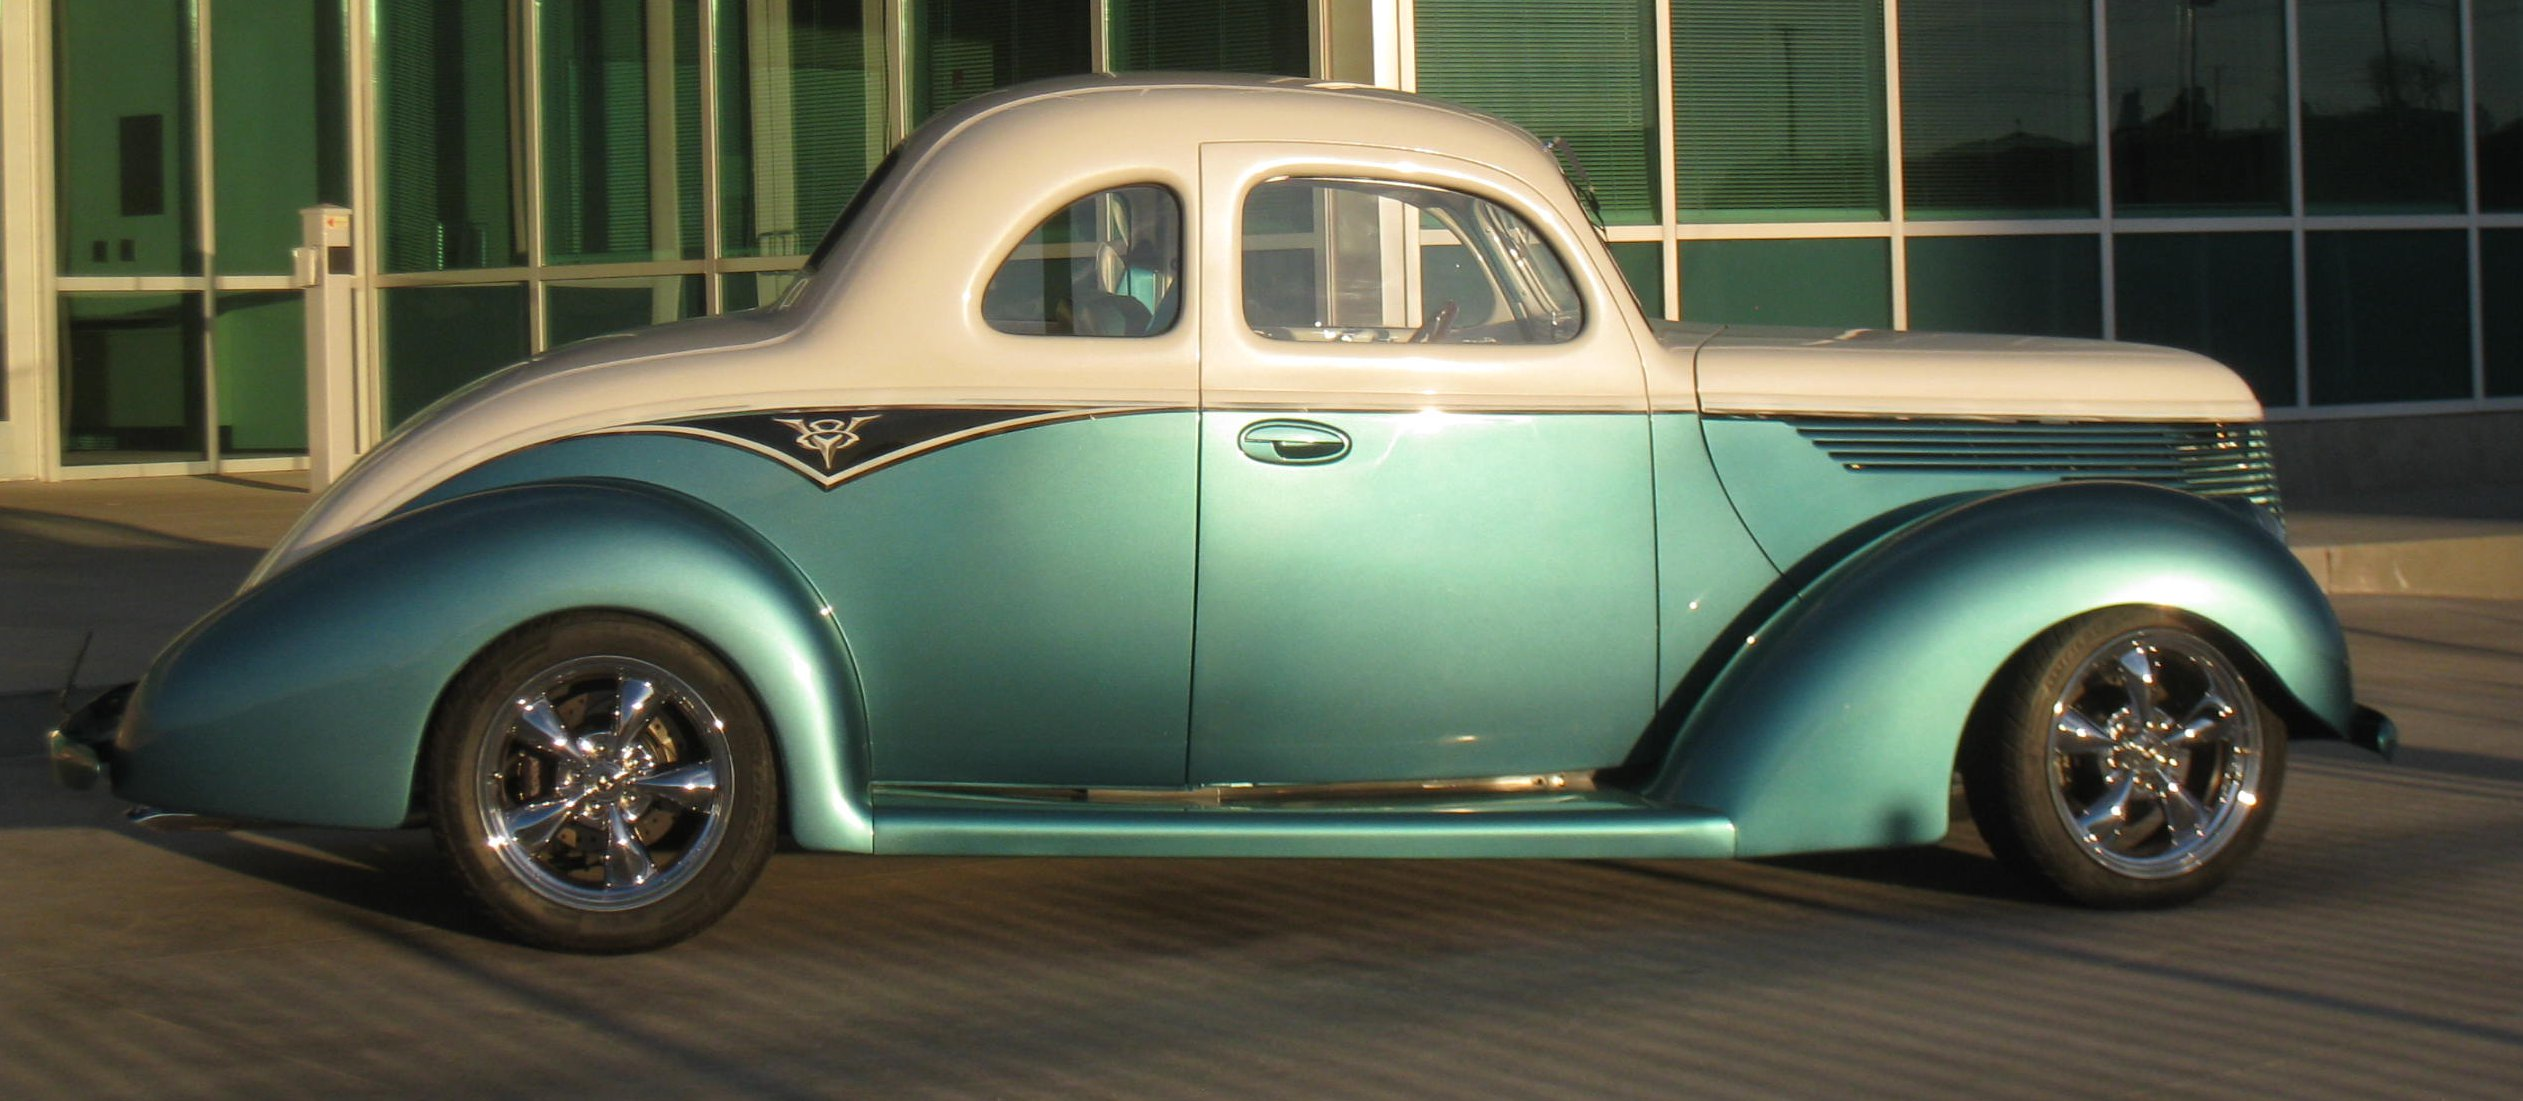 1938 Chevy Coupe >> J and B Classics and Equipment - 1938 Ford Two Door Coupe